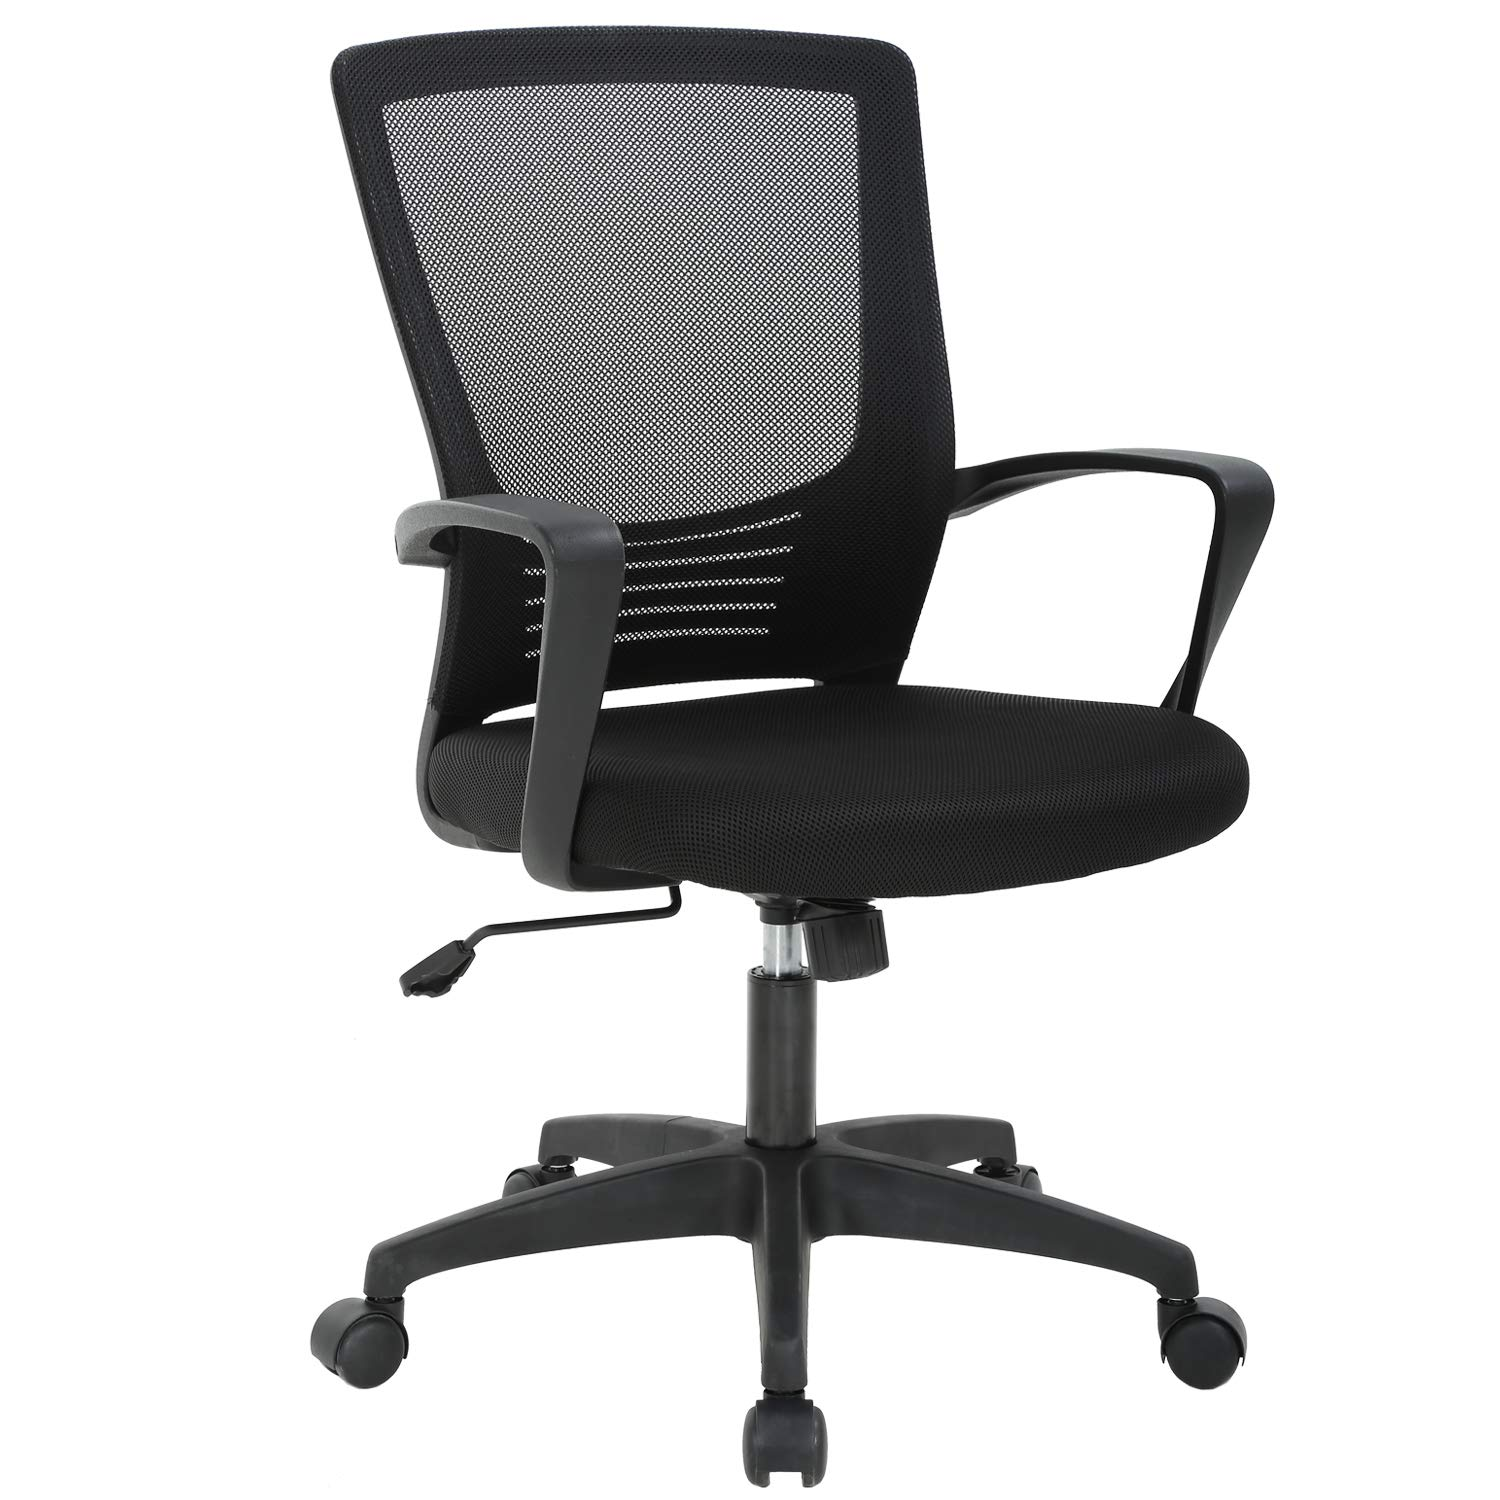 Office Chair Ergonomic Cheap Desk Chair Swivel Rolling Computer Chair Executive Lumbar Support Task Mesh Chair Metal Base for Home&Office, Black by BMS